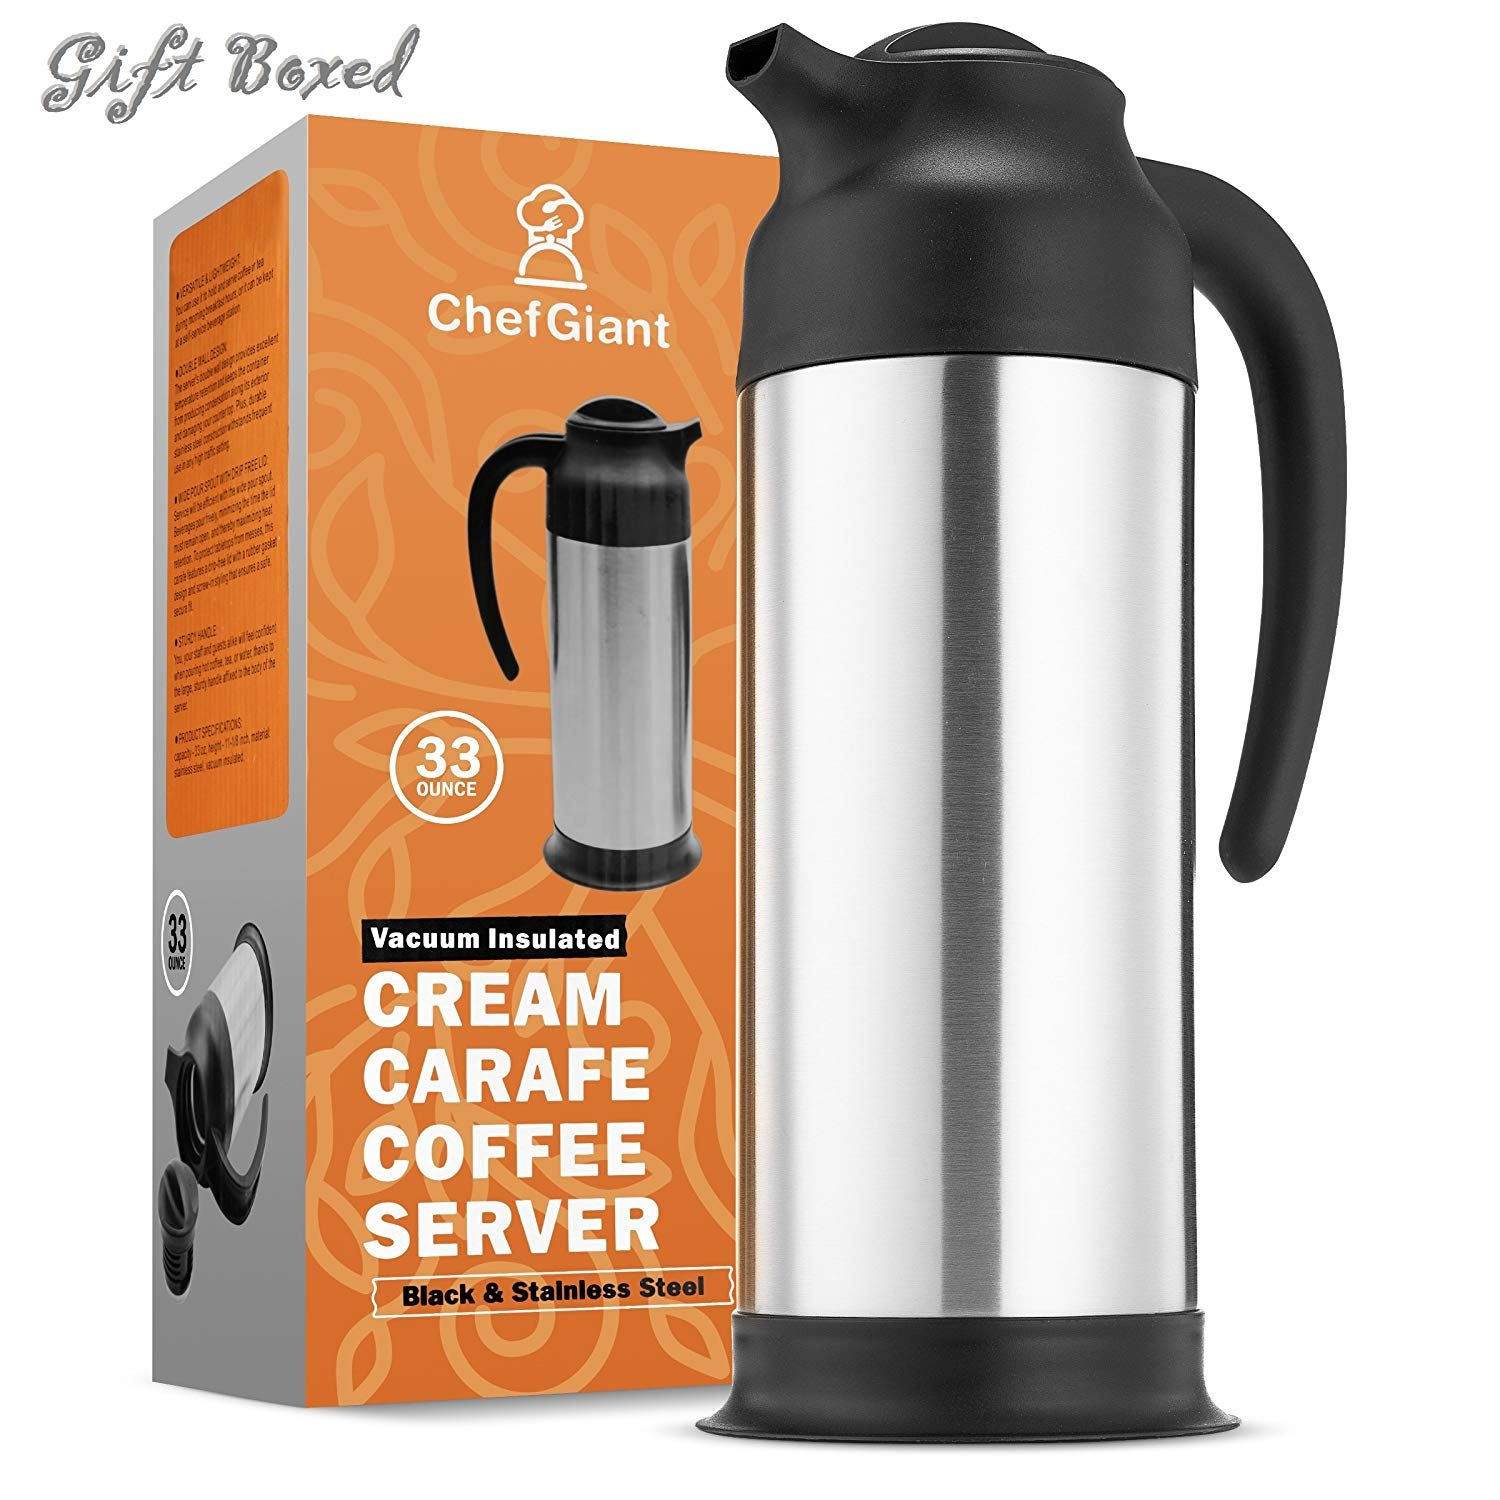 ChefGiant Coffee Thermal Carafe, 33 oz/1 Liter Insulated Cream Milk Server, Hot and Cold Beverage Water Dispenser, Stainless Steel 201 Interior & Exterior, Slim for Easy Handle & Travel